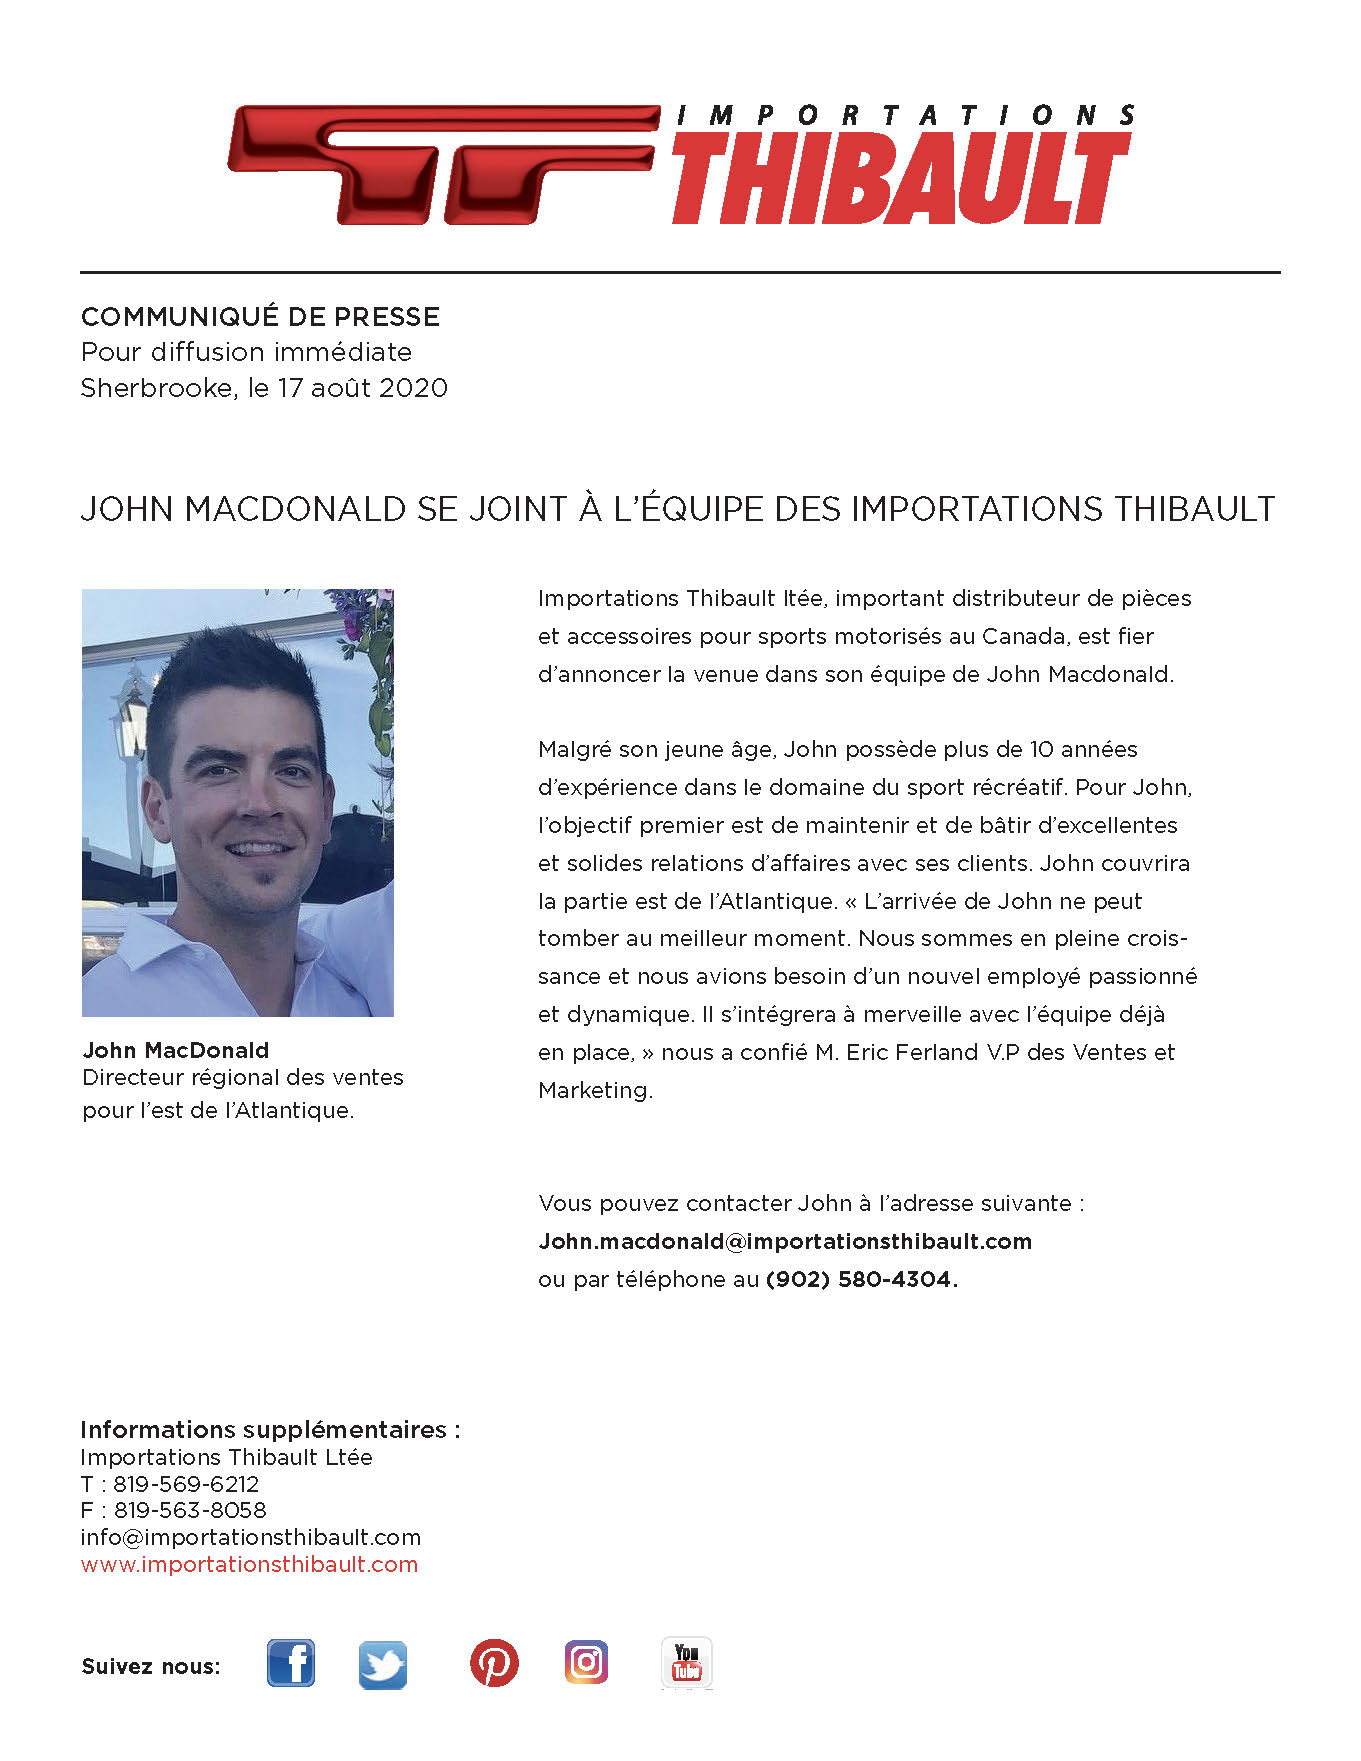 Mr John Macdonald joins the Importations Thibault team.